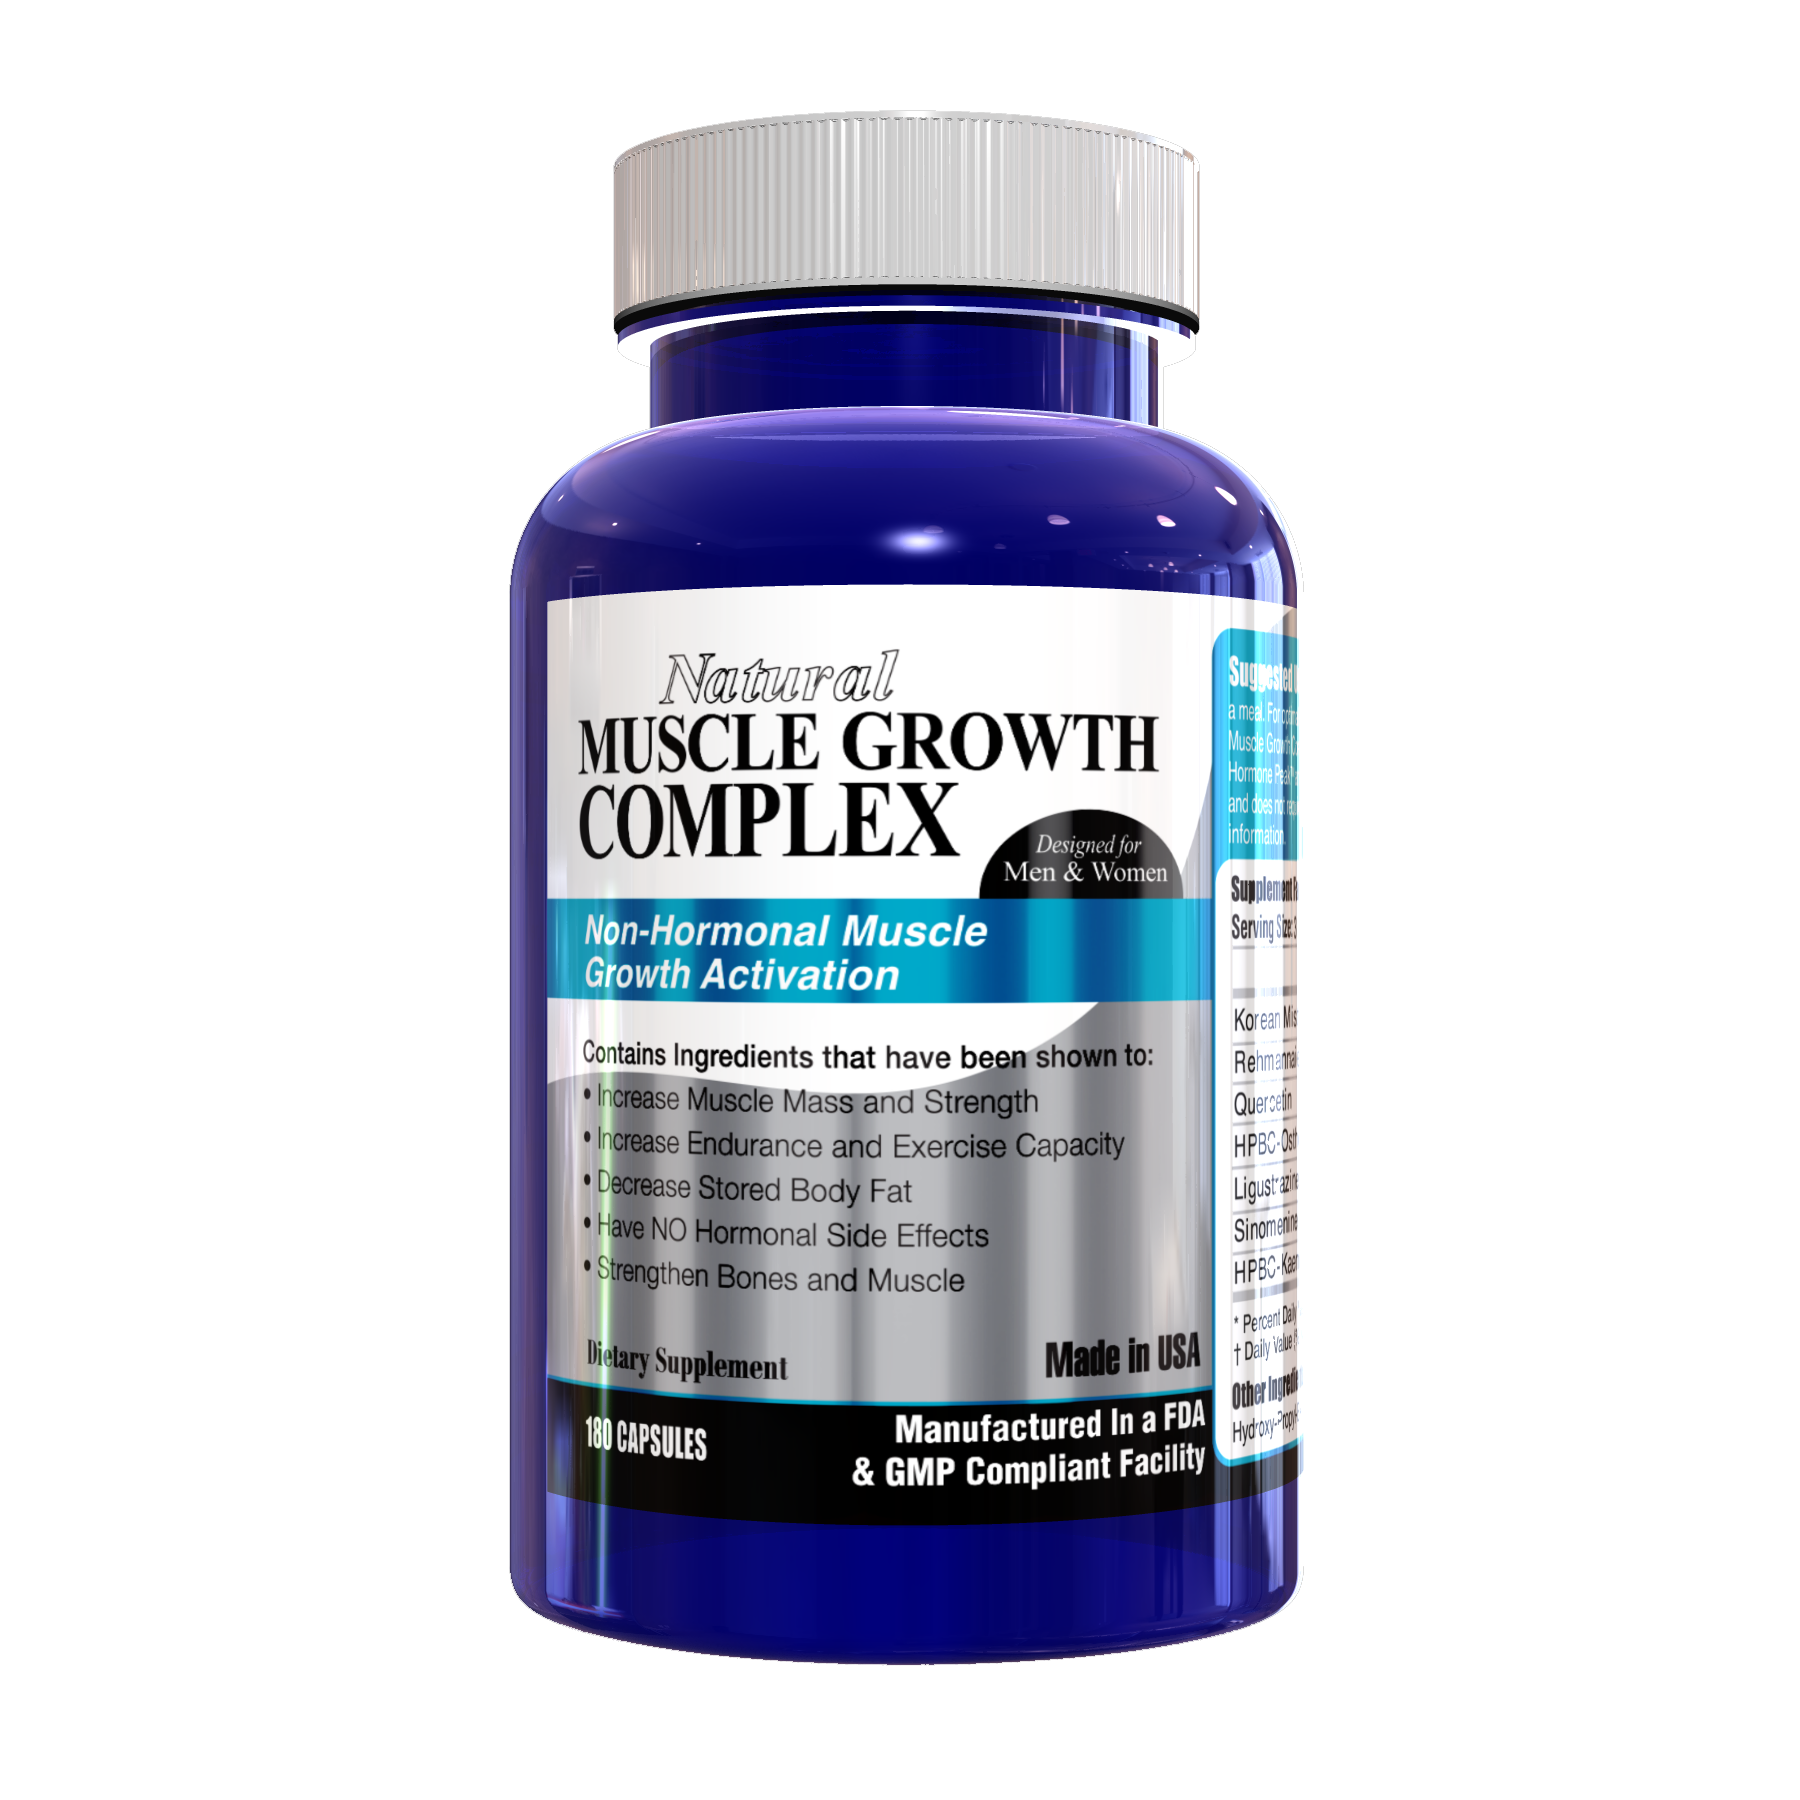 Natural Muscle Growth Complex